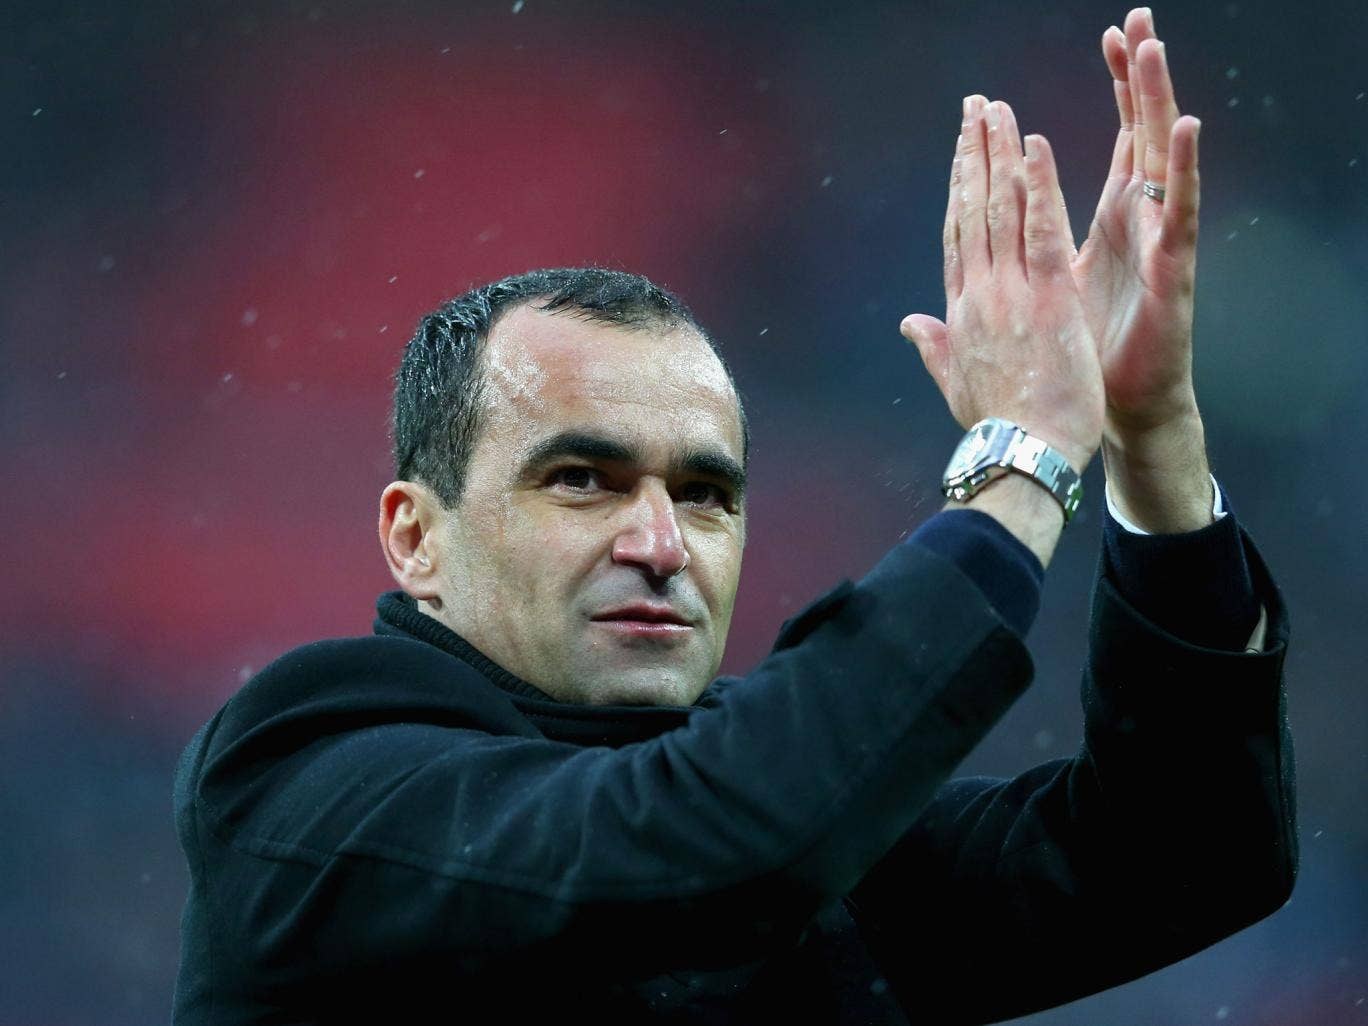 Wigan Athletic manager Roberto Martinez applauds the fans after the semi final match between Millwall and Wigan Athletic